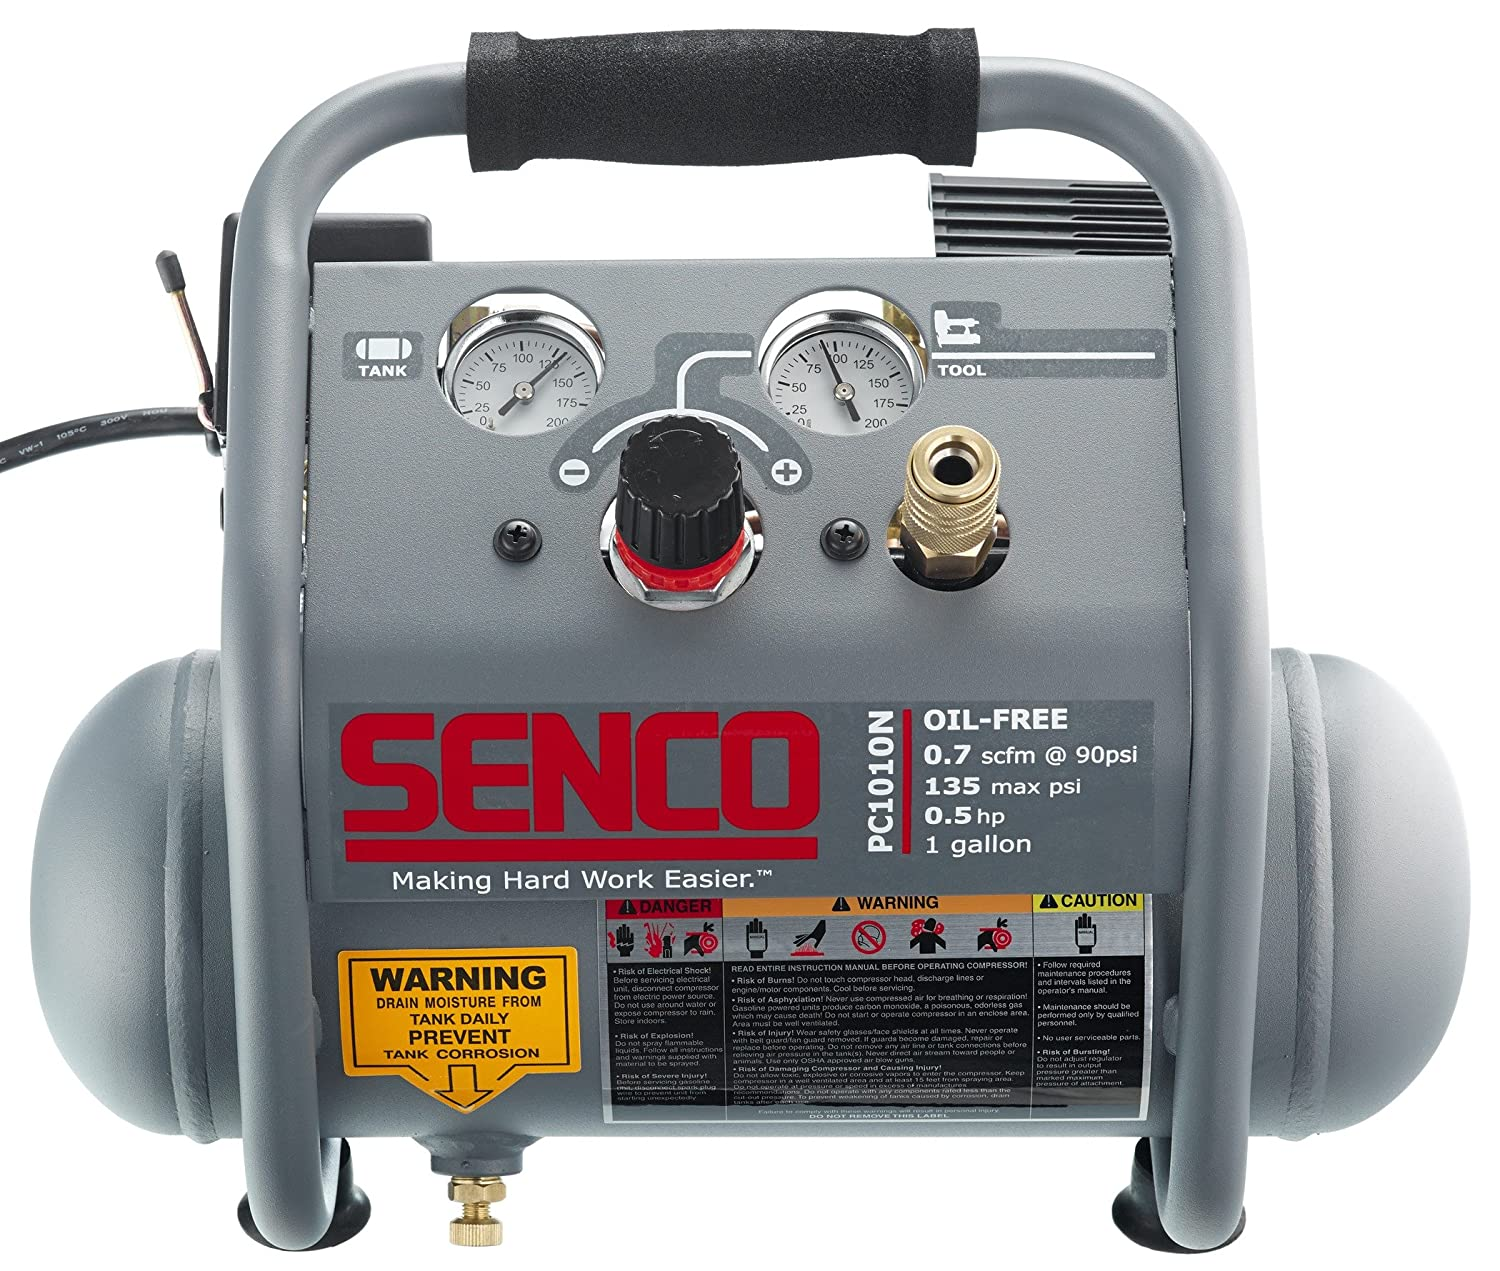 Senco PC1010N 1 2 Hp Finish Trim Portable Hot Dog Compressor, Grey